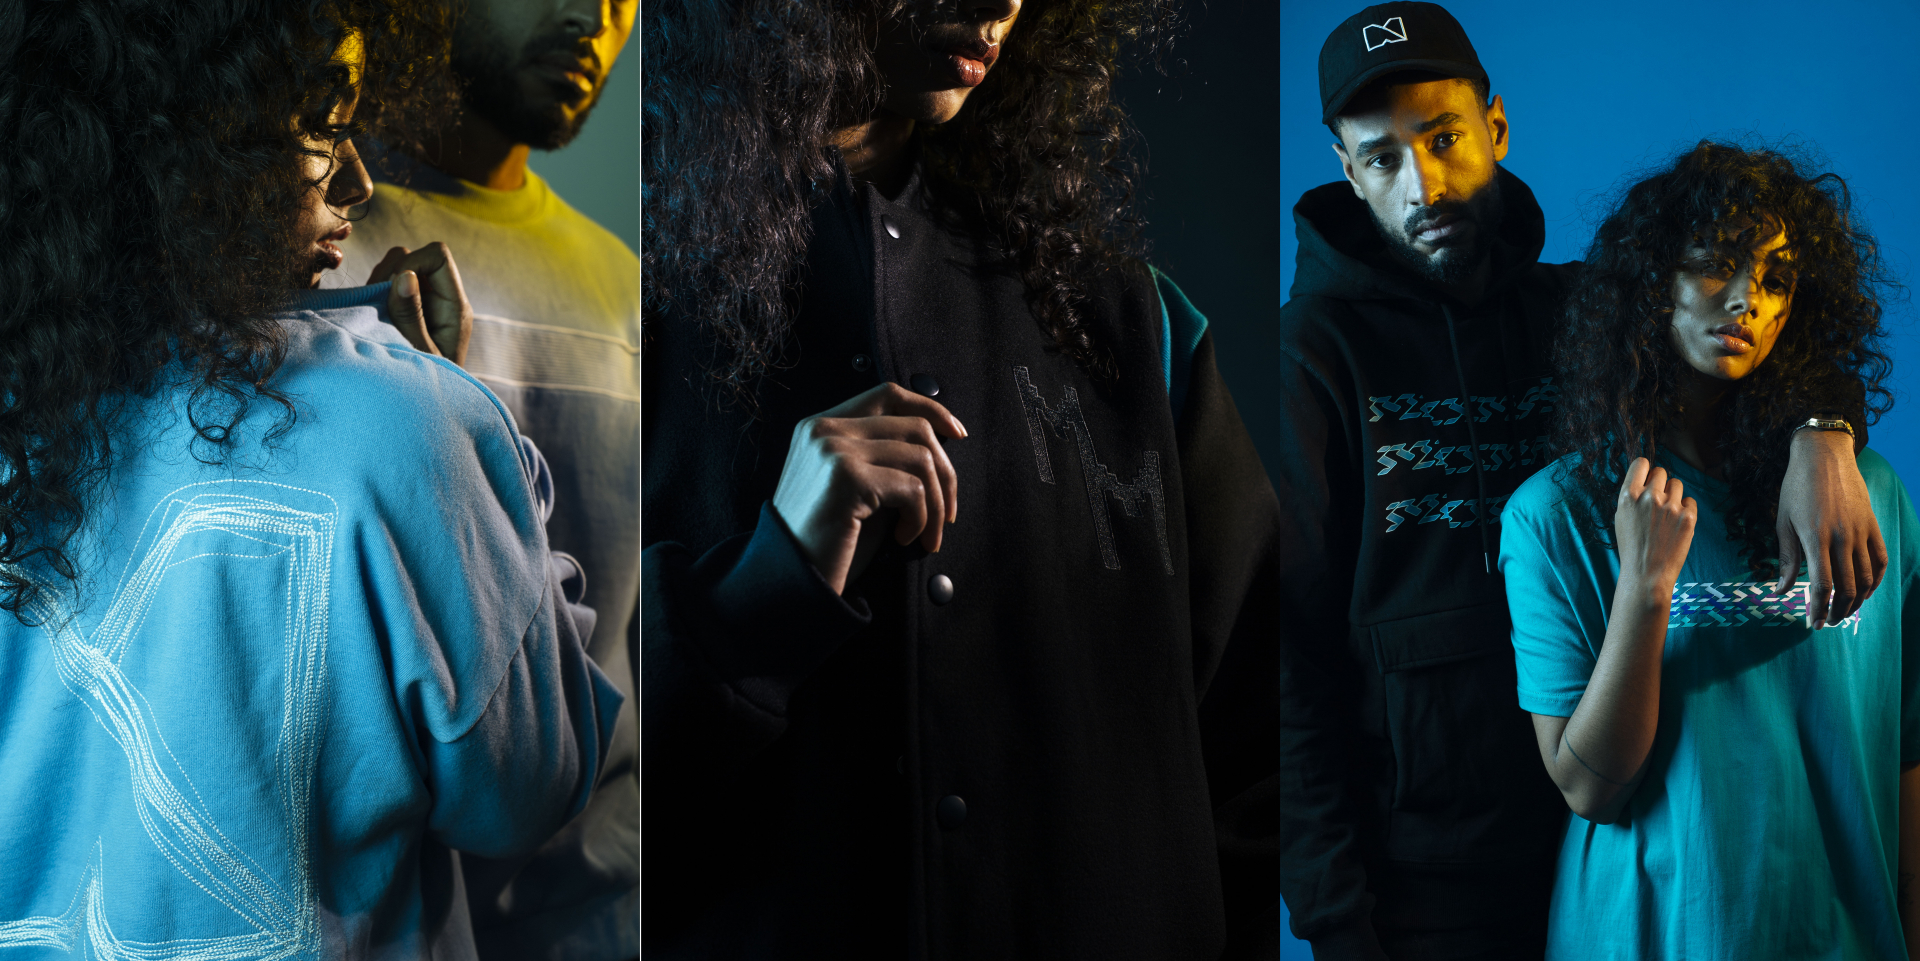 WE PROUDLY PRESENT: MIXMASHOUTLINES Winter'19 collection